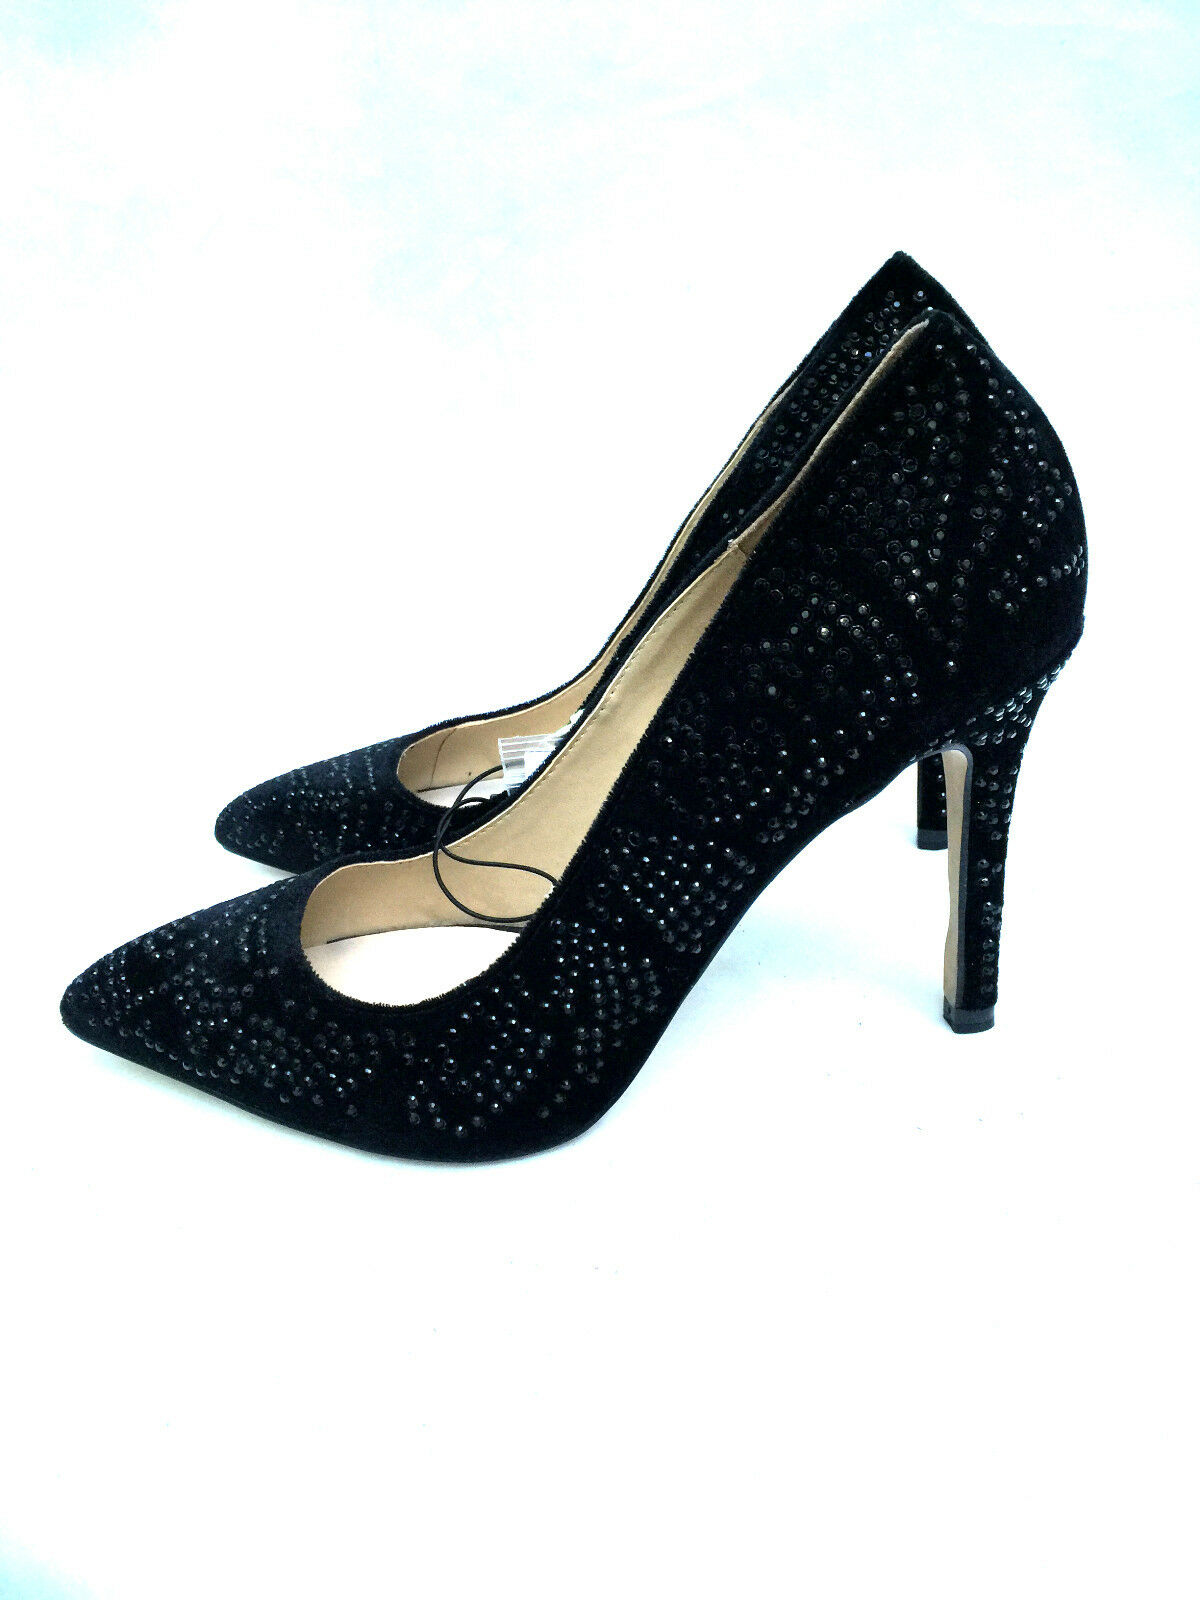 ZARA BLACK STUDDED DIAMANTE HIGH HIGH HIGH HEEL COURT Schuhe SIZE UK7/EUR40/US9 21686d